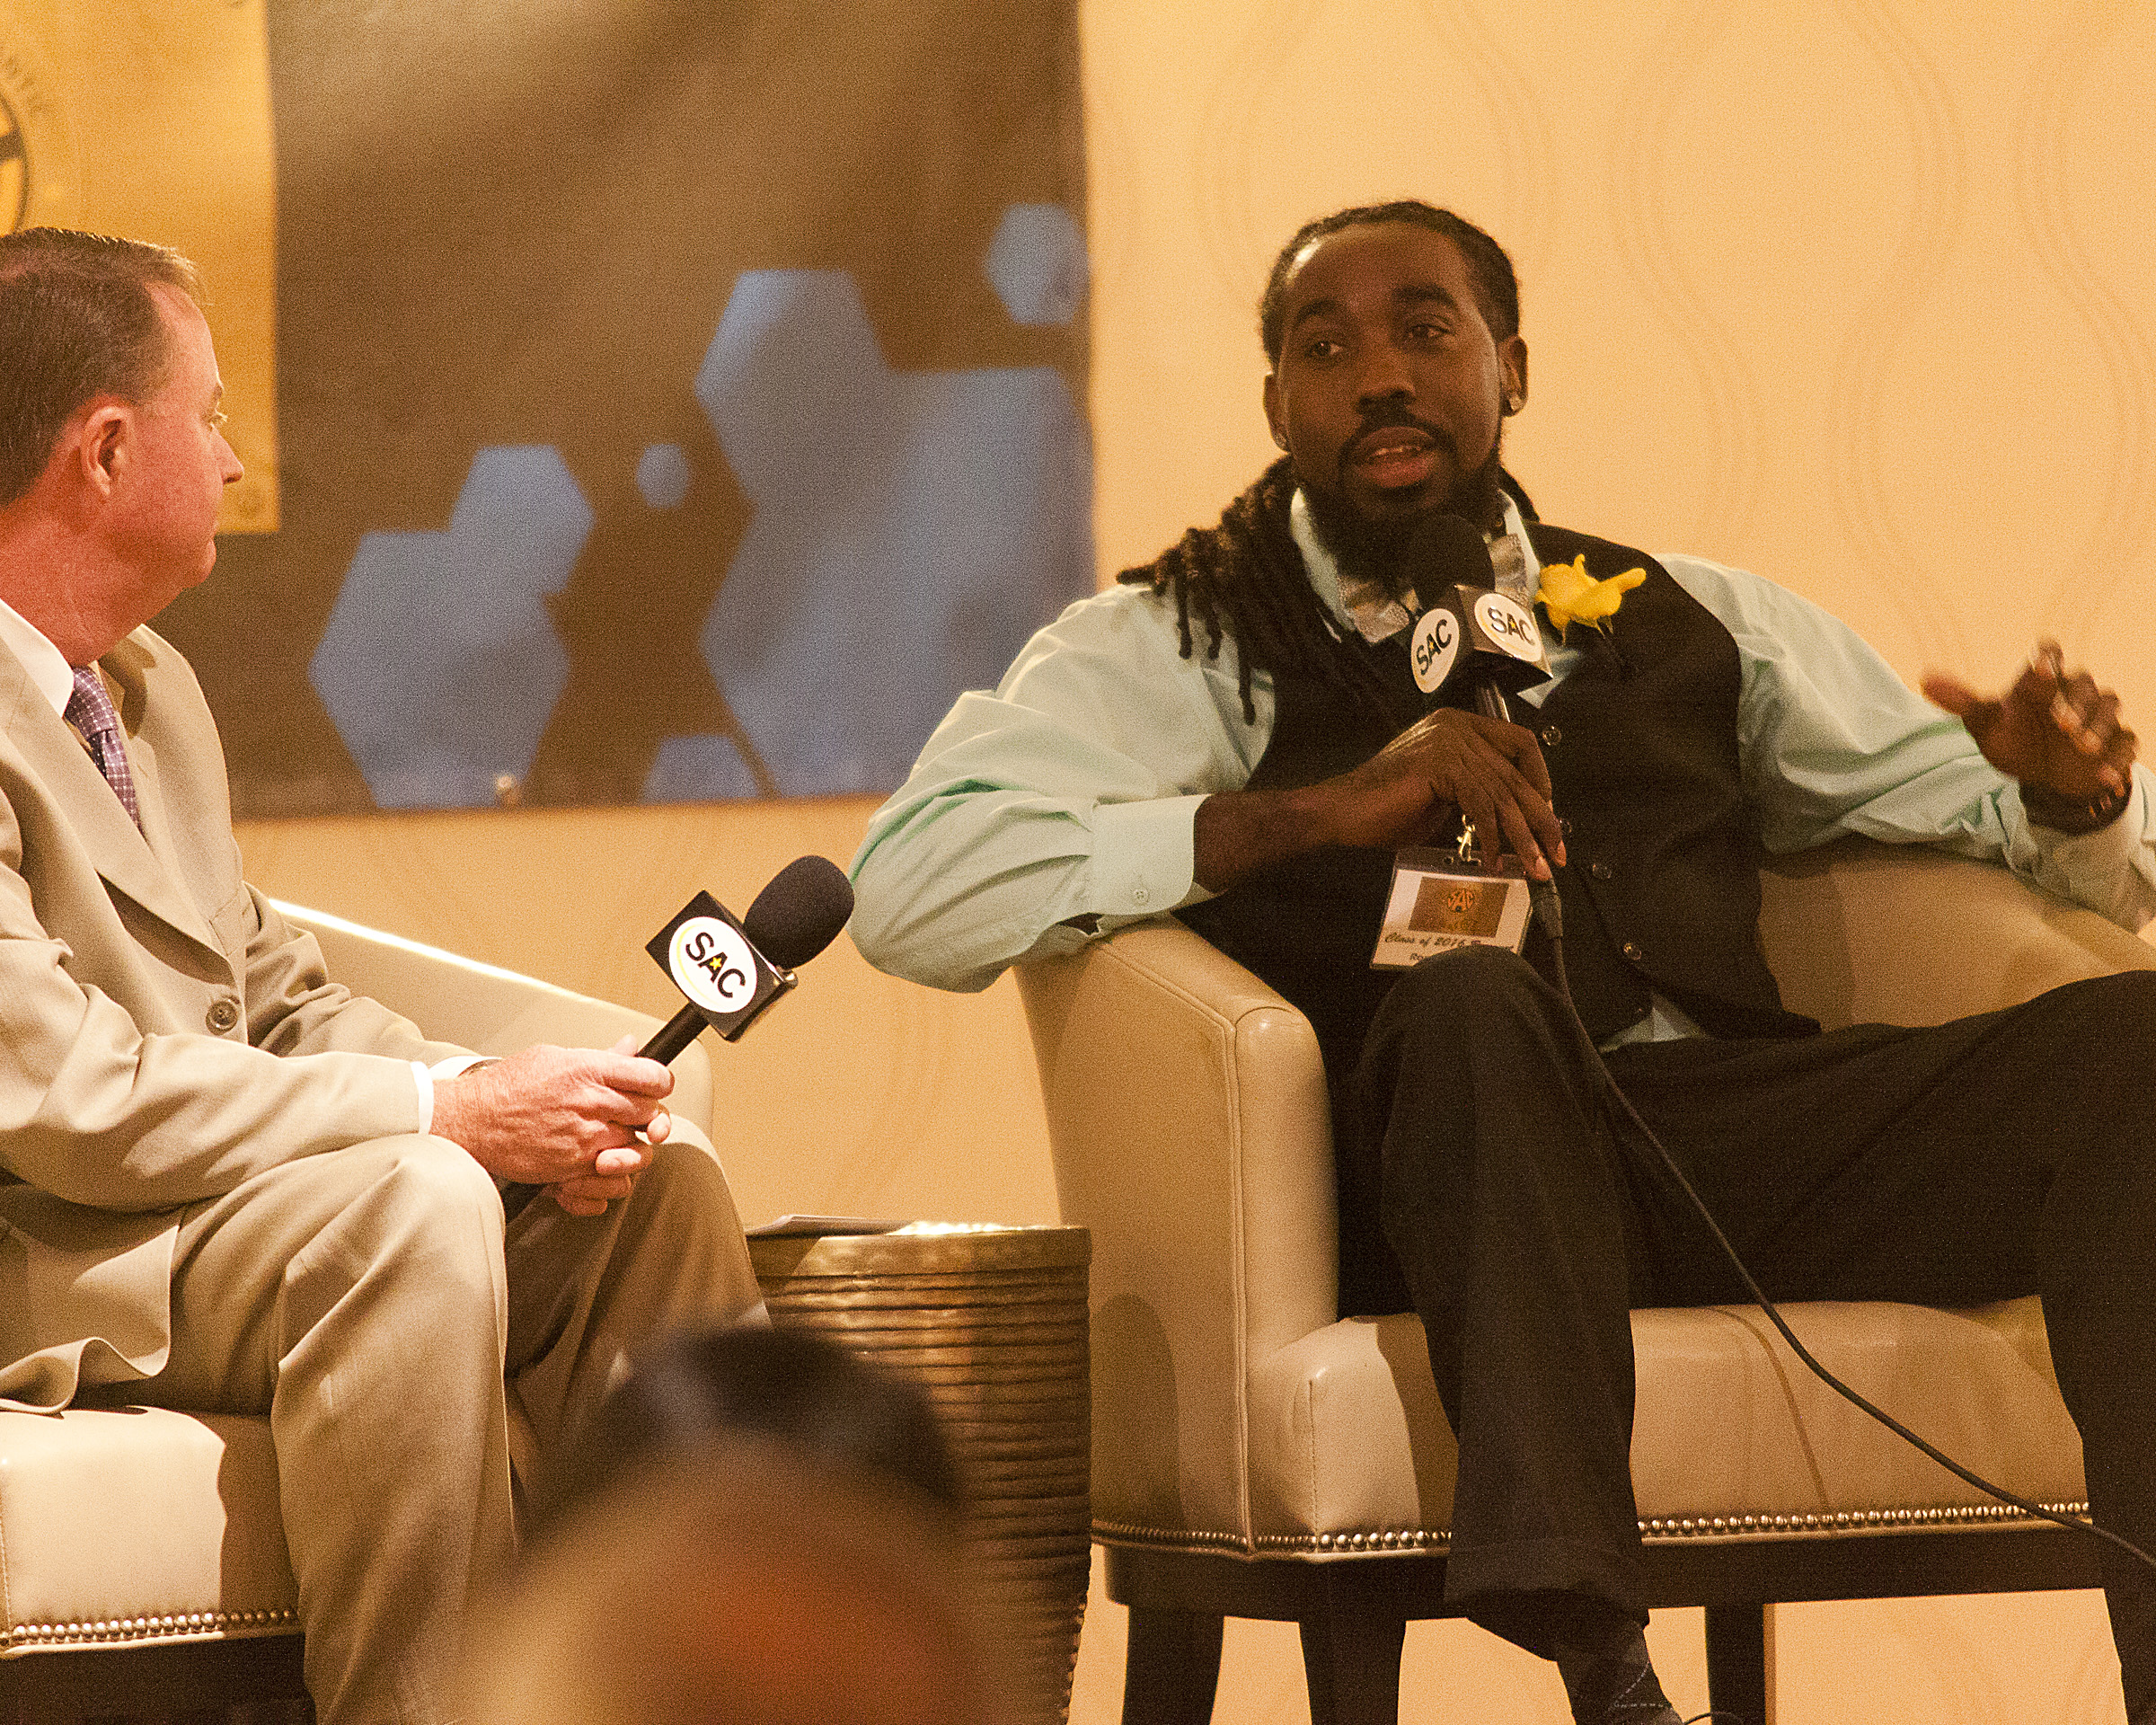 The emcee interviews one of the Hall of Fame inductees while they sit in chairs on a stage